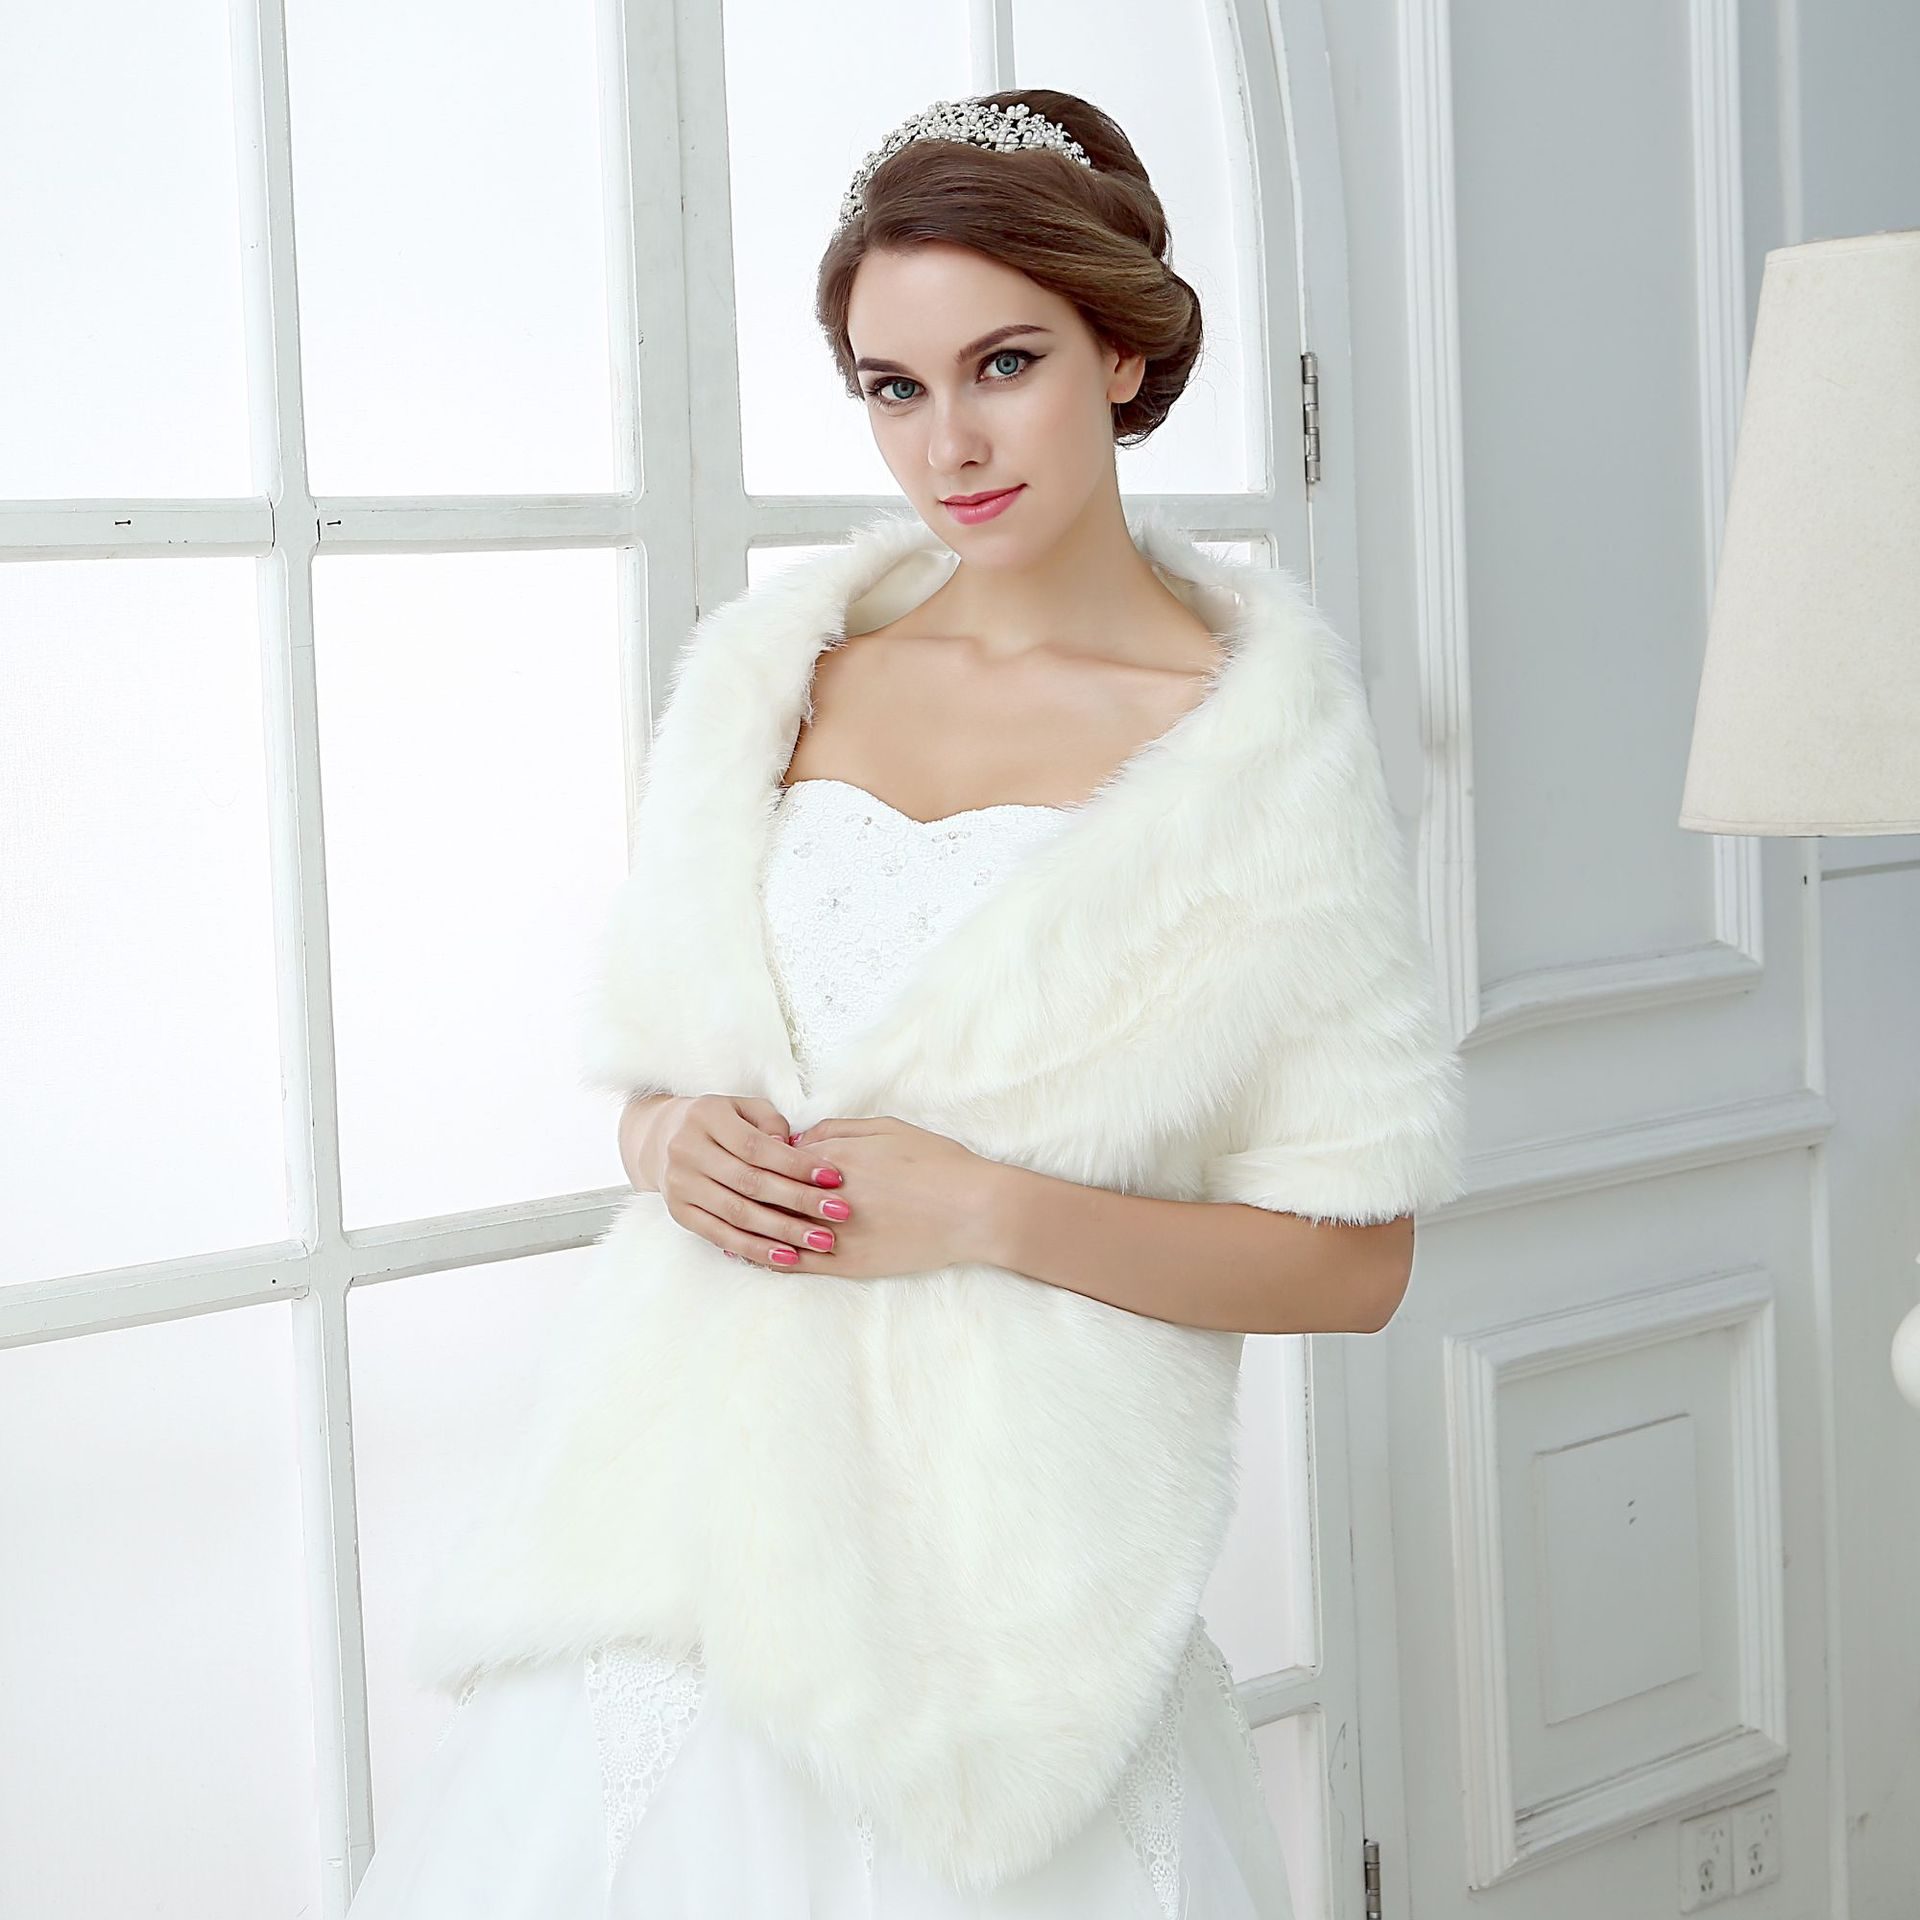 Hot Sale Warm Ivory Bolero Women Jackets Soft Faux Fur 160 CM One Size Wedding Accessories Bridal Wraps Shawls